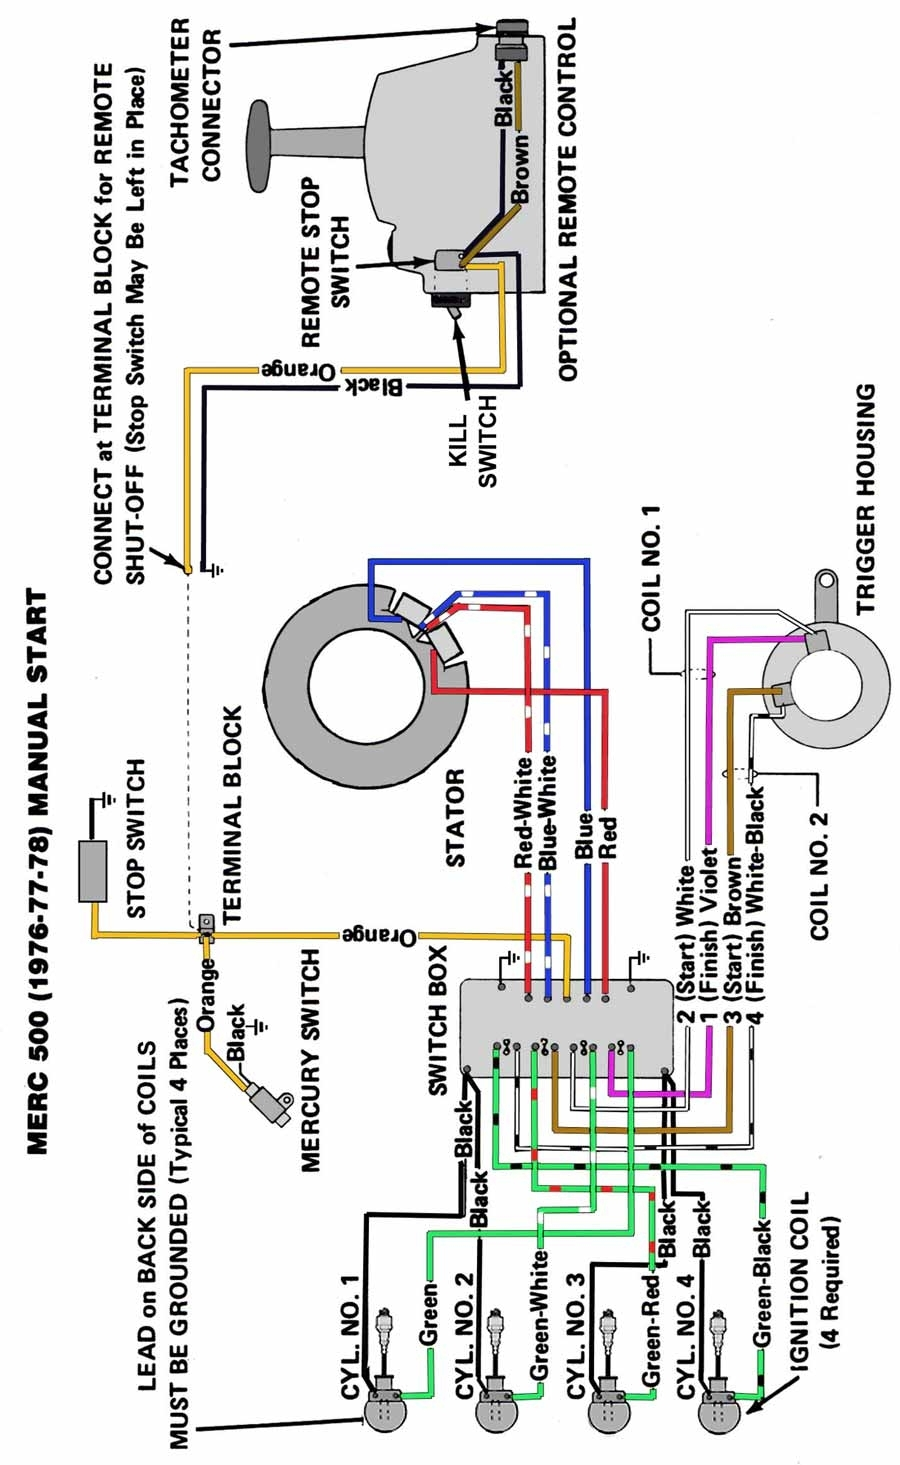 1977 Johnson Outboard Kill Switch Wiring Detailed Diagrams Boat Lift Diagram 115793s Evinrude Blog About